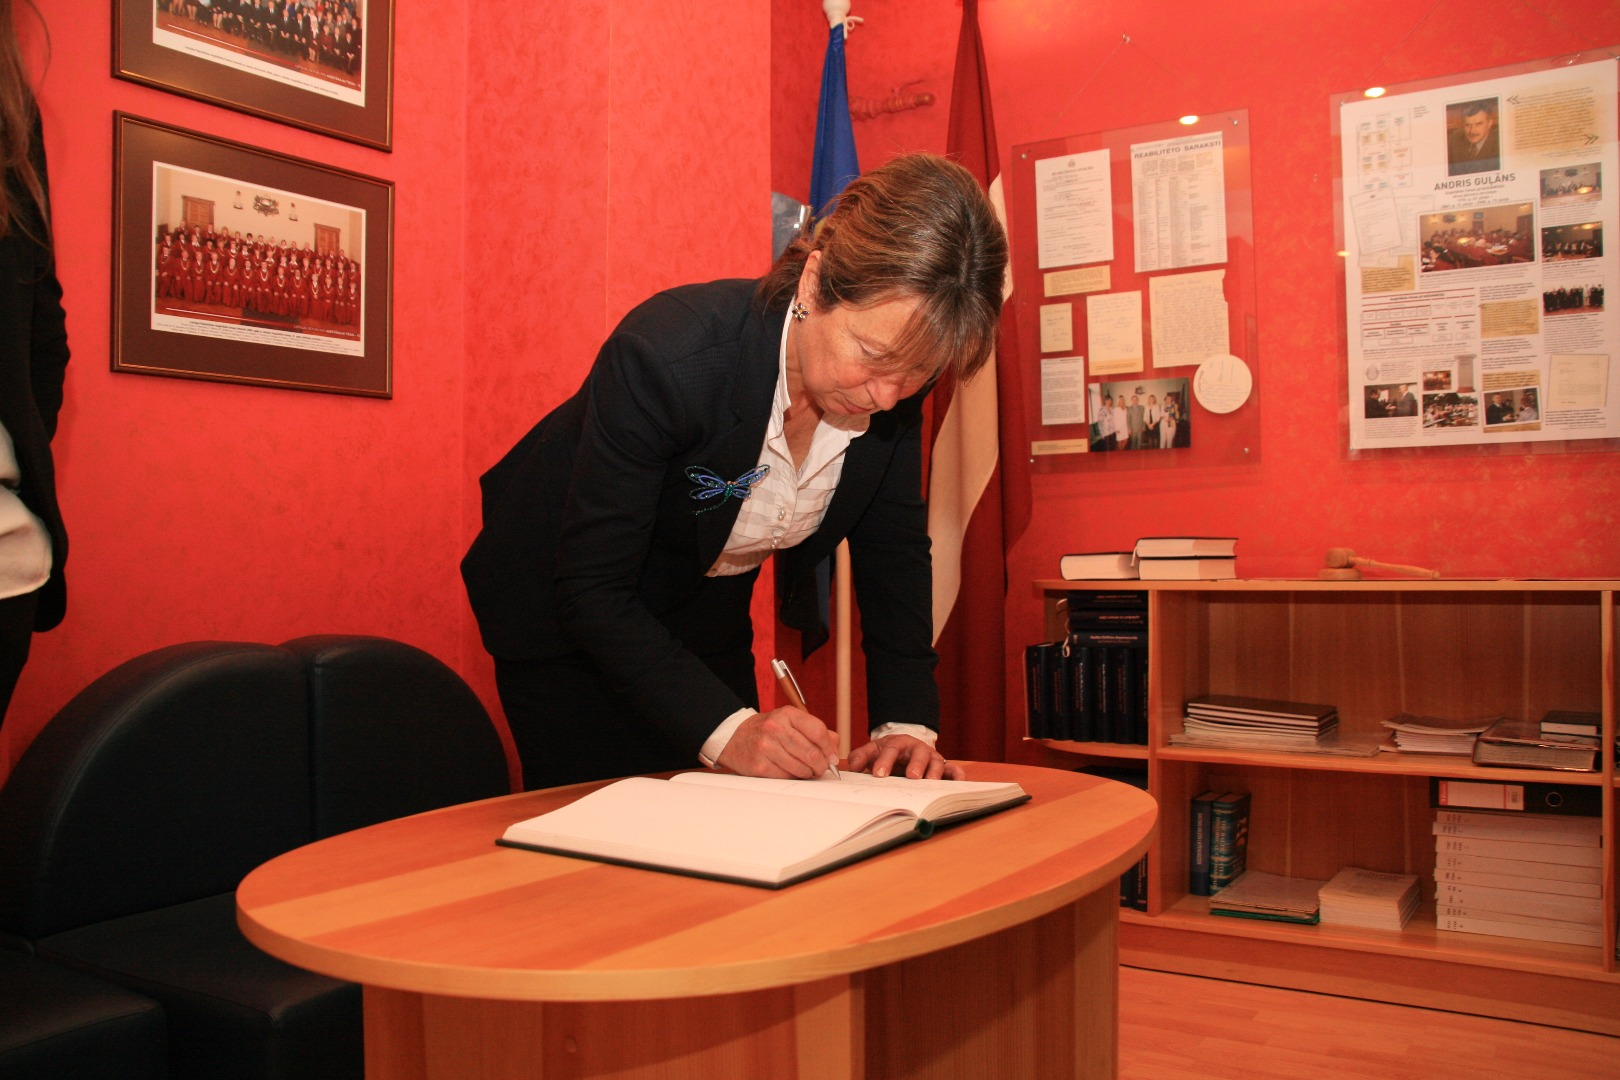 16.11.2016. The Supreme court is visited by the president of the European Law Institute Diana Wallis